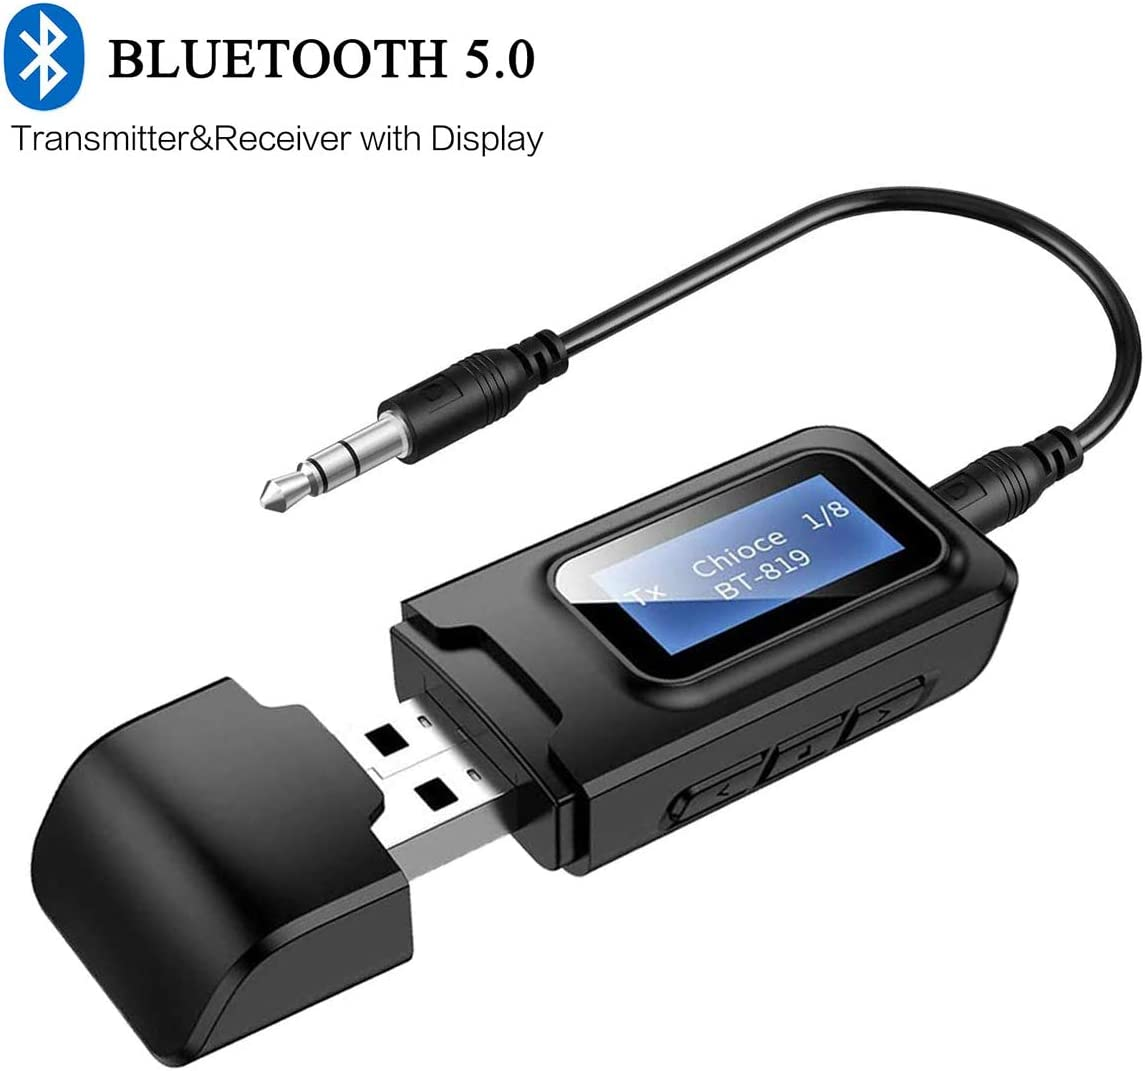 LCD Screen Display 3.5MM AUX Stereo Audio Wireless Bluetooth Receiver Adapter 3-in-1 USB Bluetooth Transmitter Receiver 5.0 for TV Computer